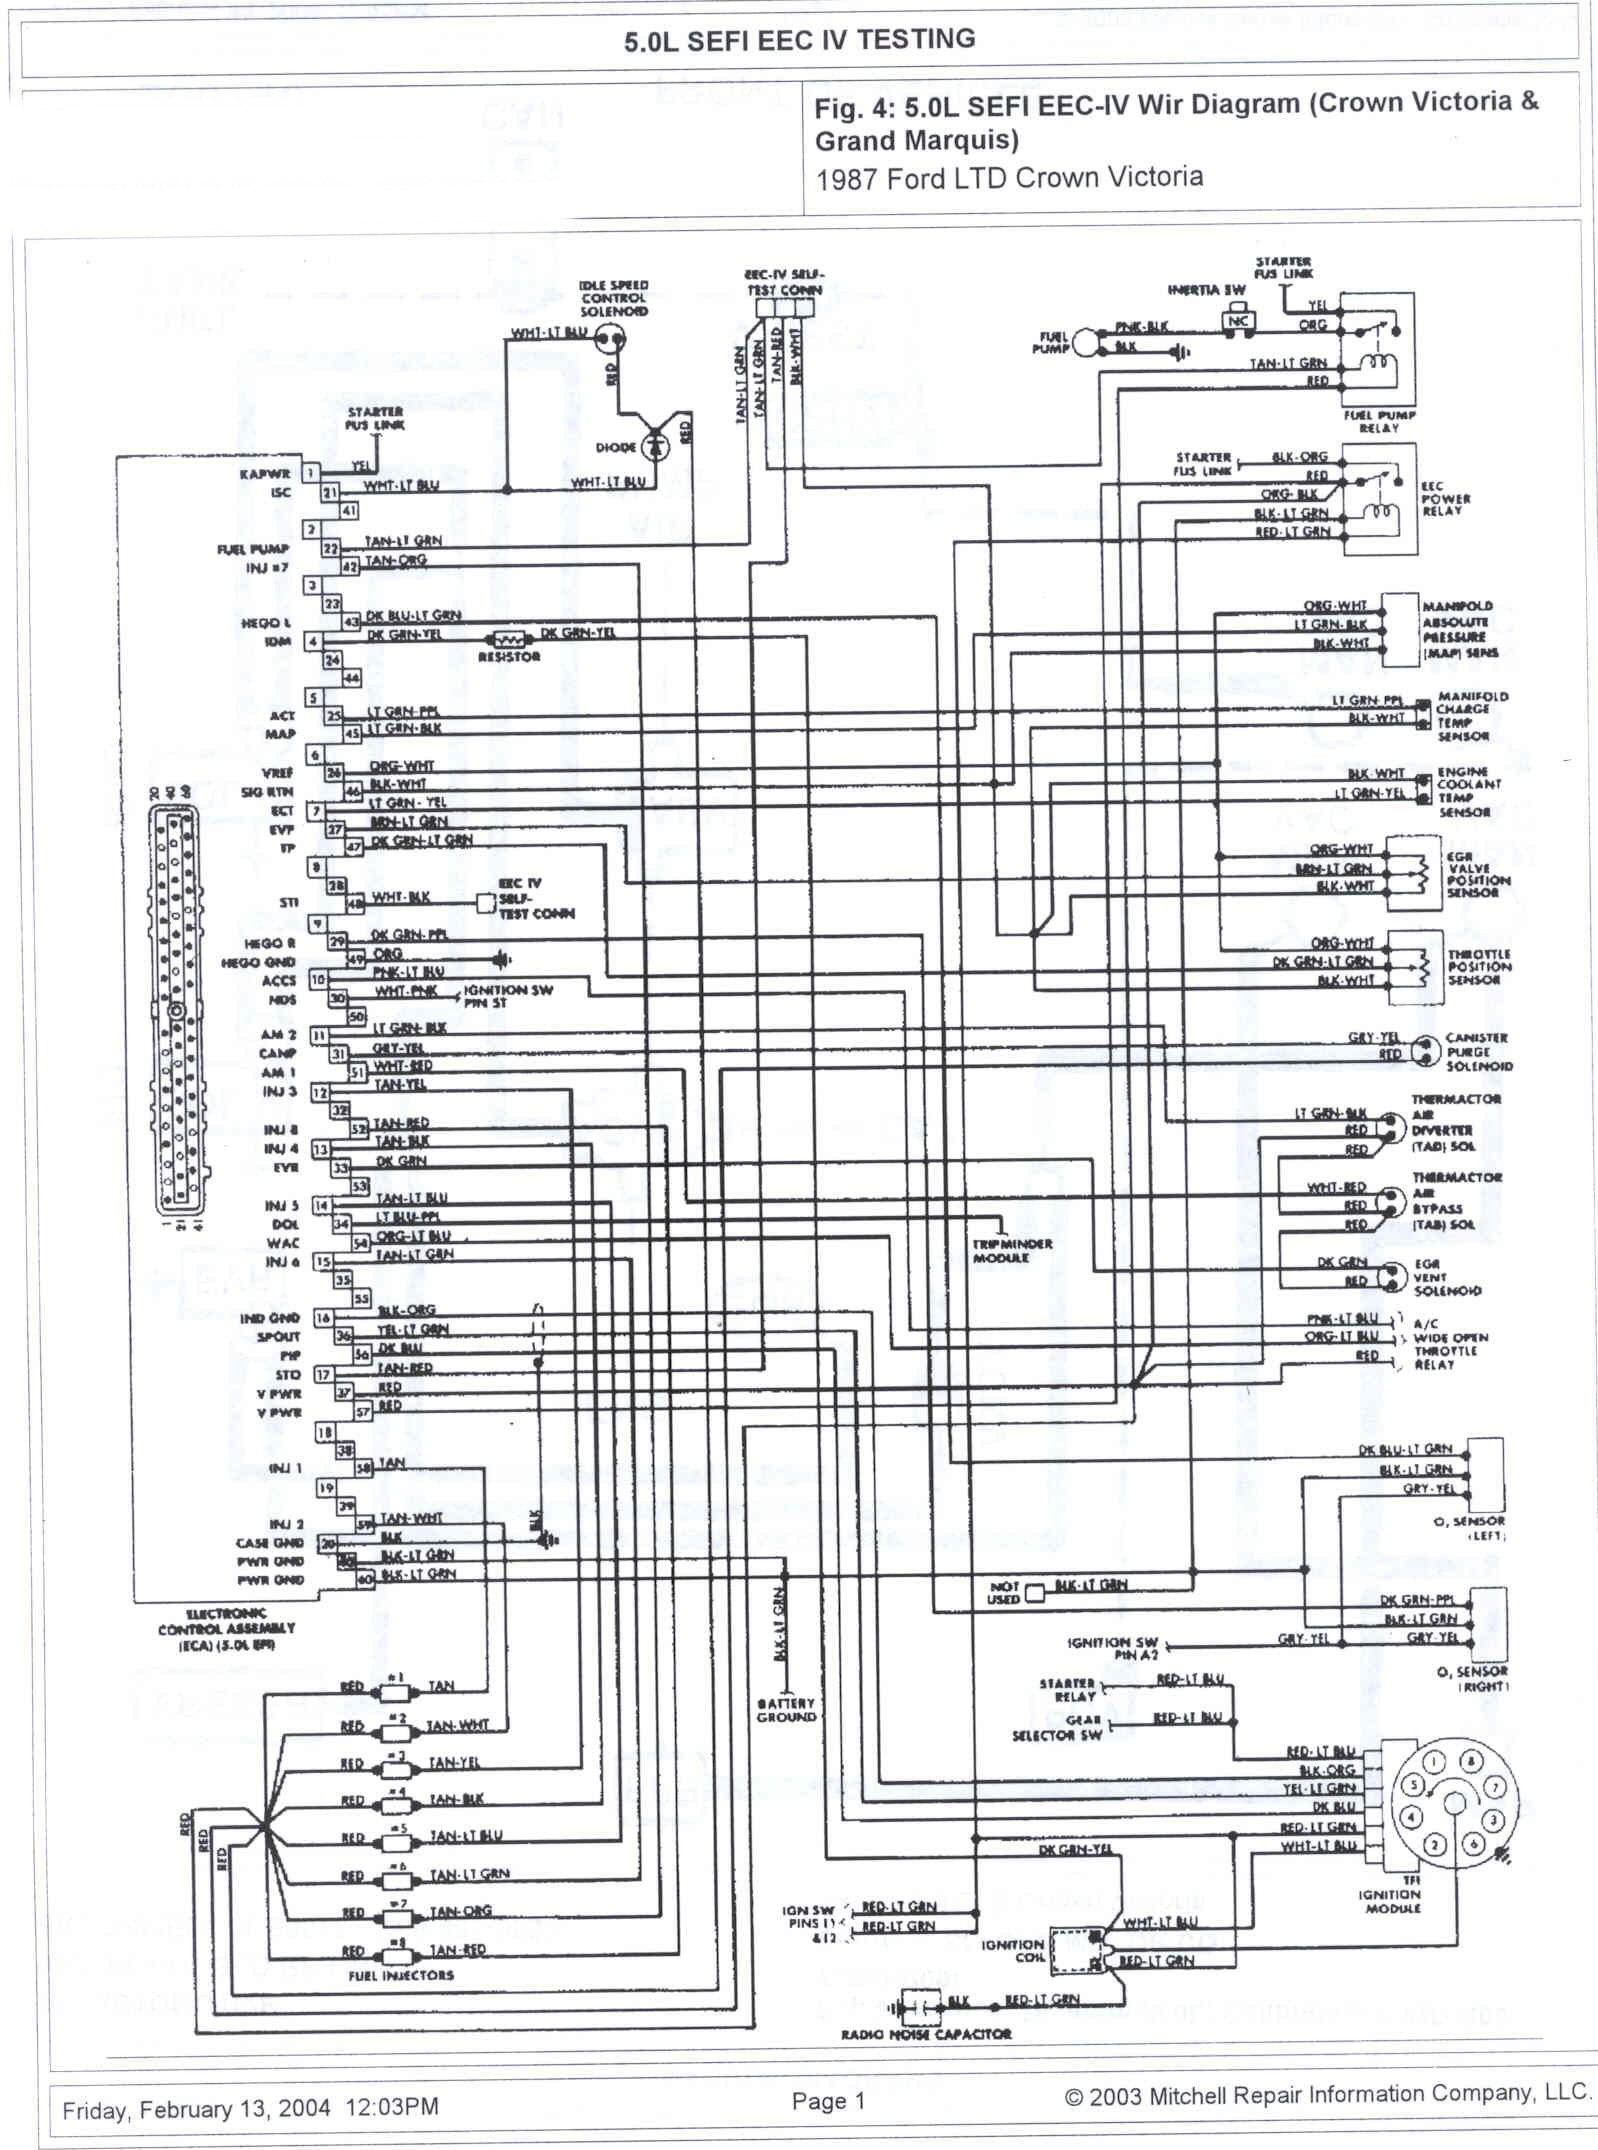 Horn Wiring Diagram 1989 F150 Trusted 2003 Ford Crown Vic 2011 Victoria Diagrams U2022 F 250